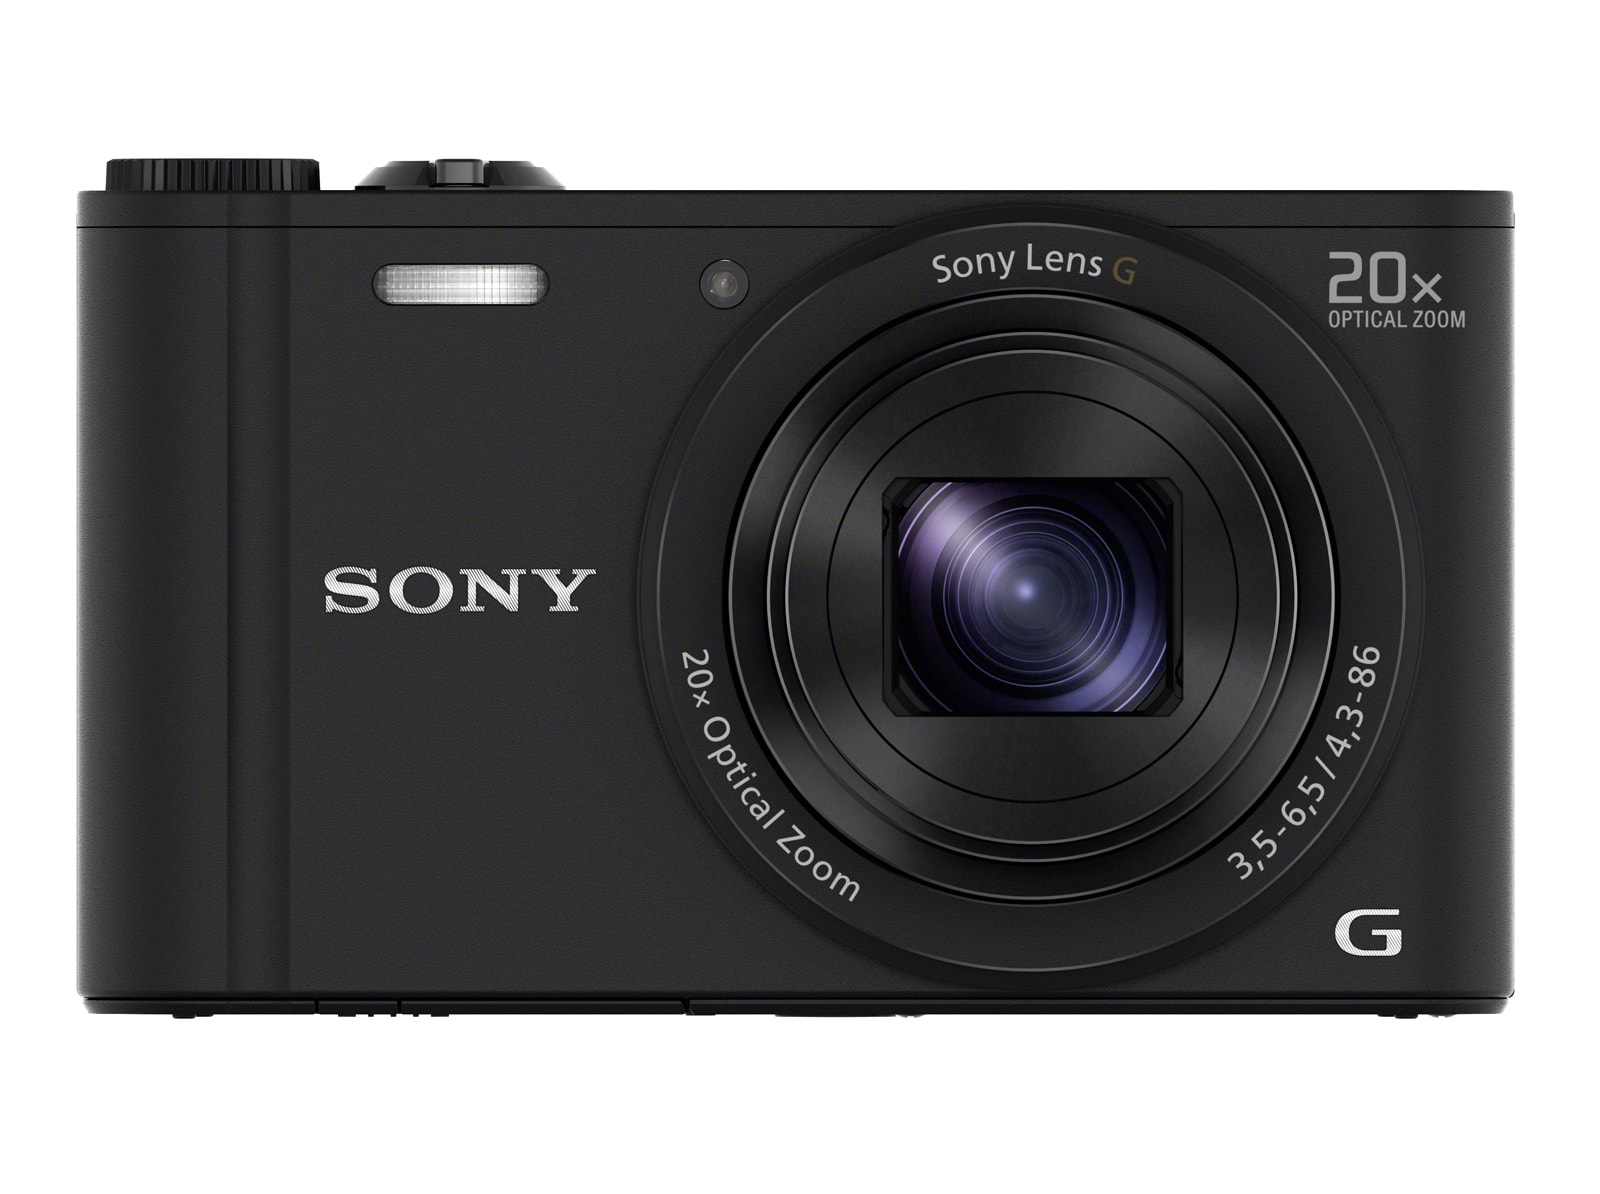 Sony DSC-WX 350 B Kompaktkamera 7,5cm/3'' 18,2MP WLAN Full-HD für 179,00 Euro